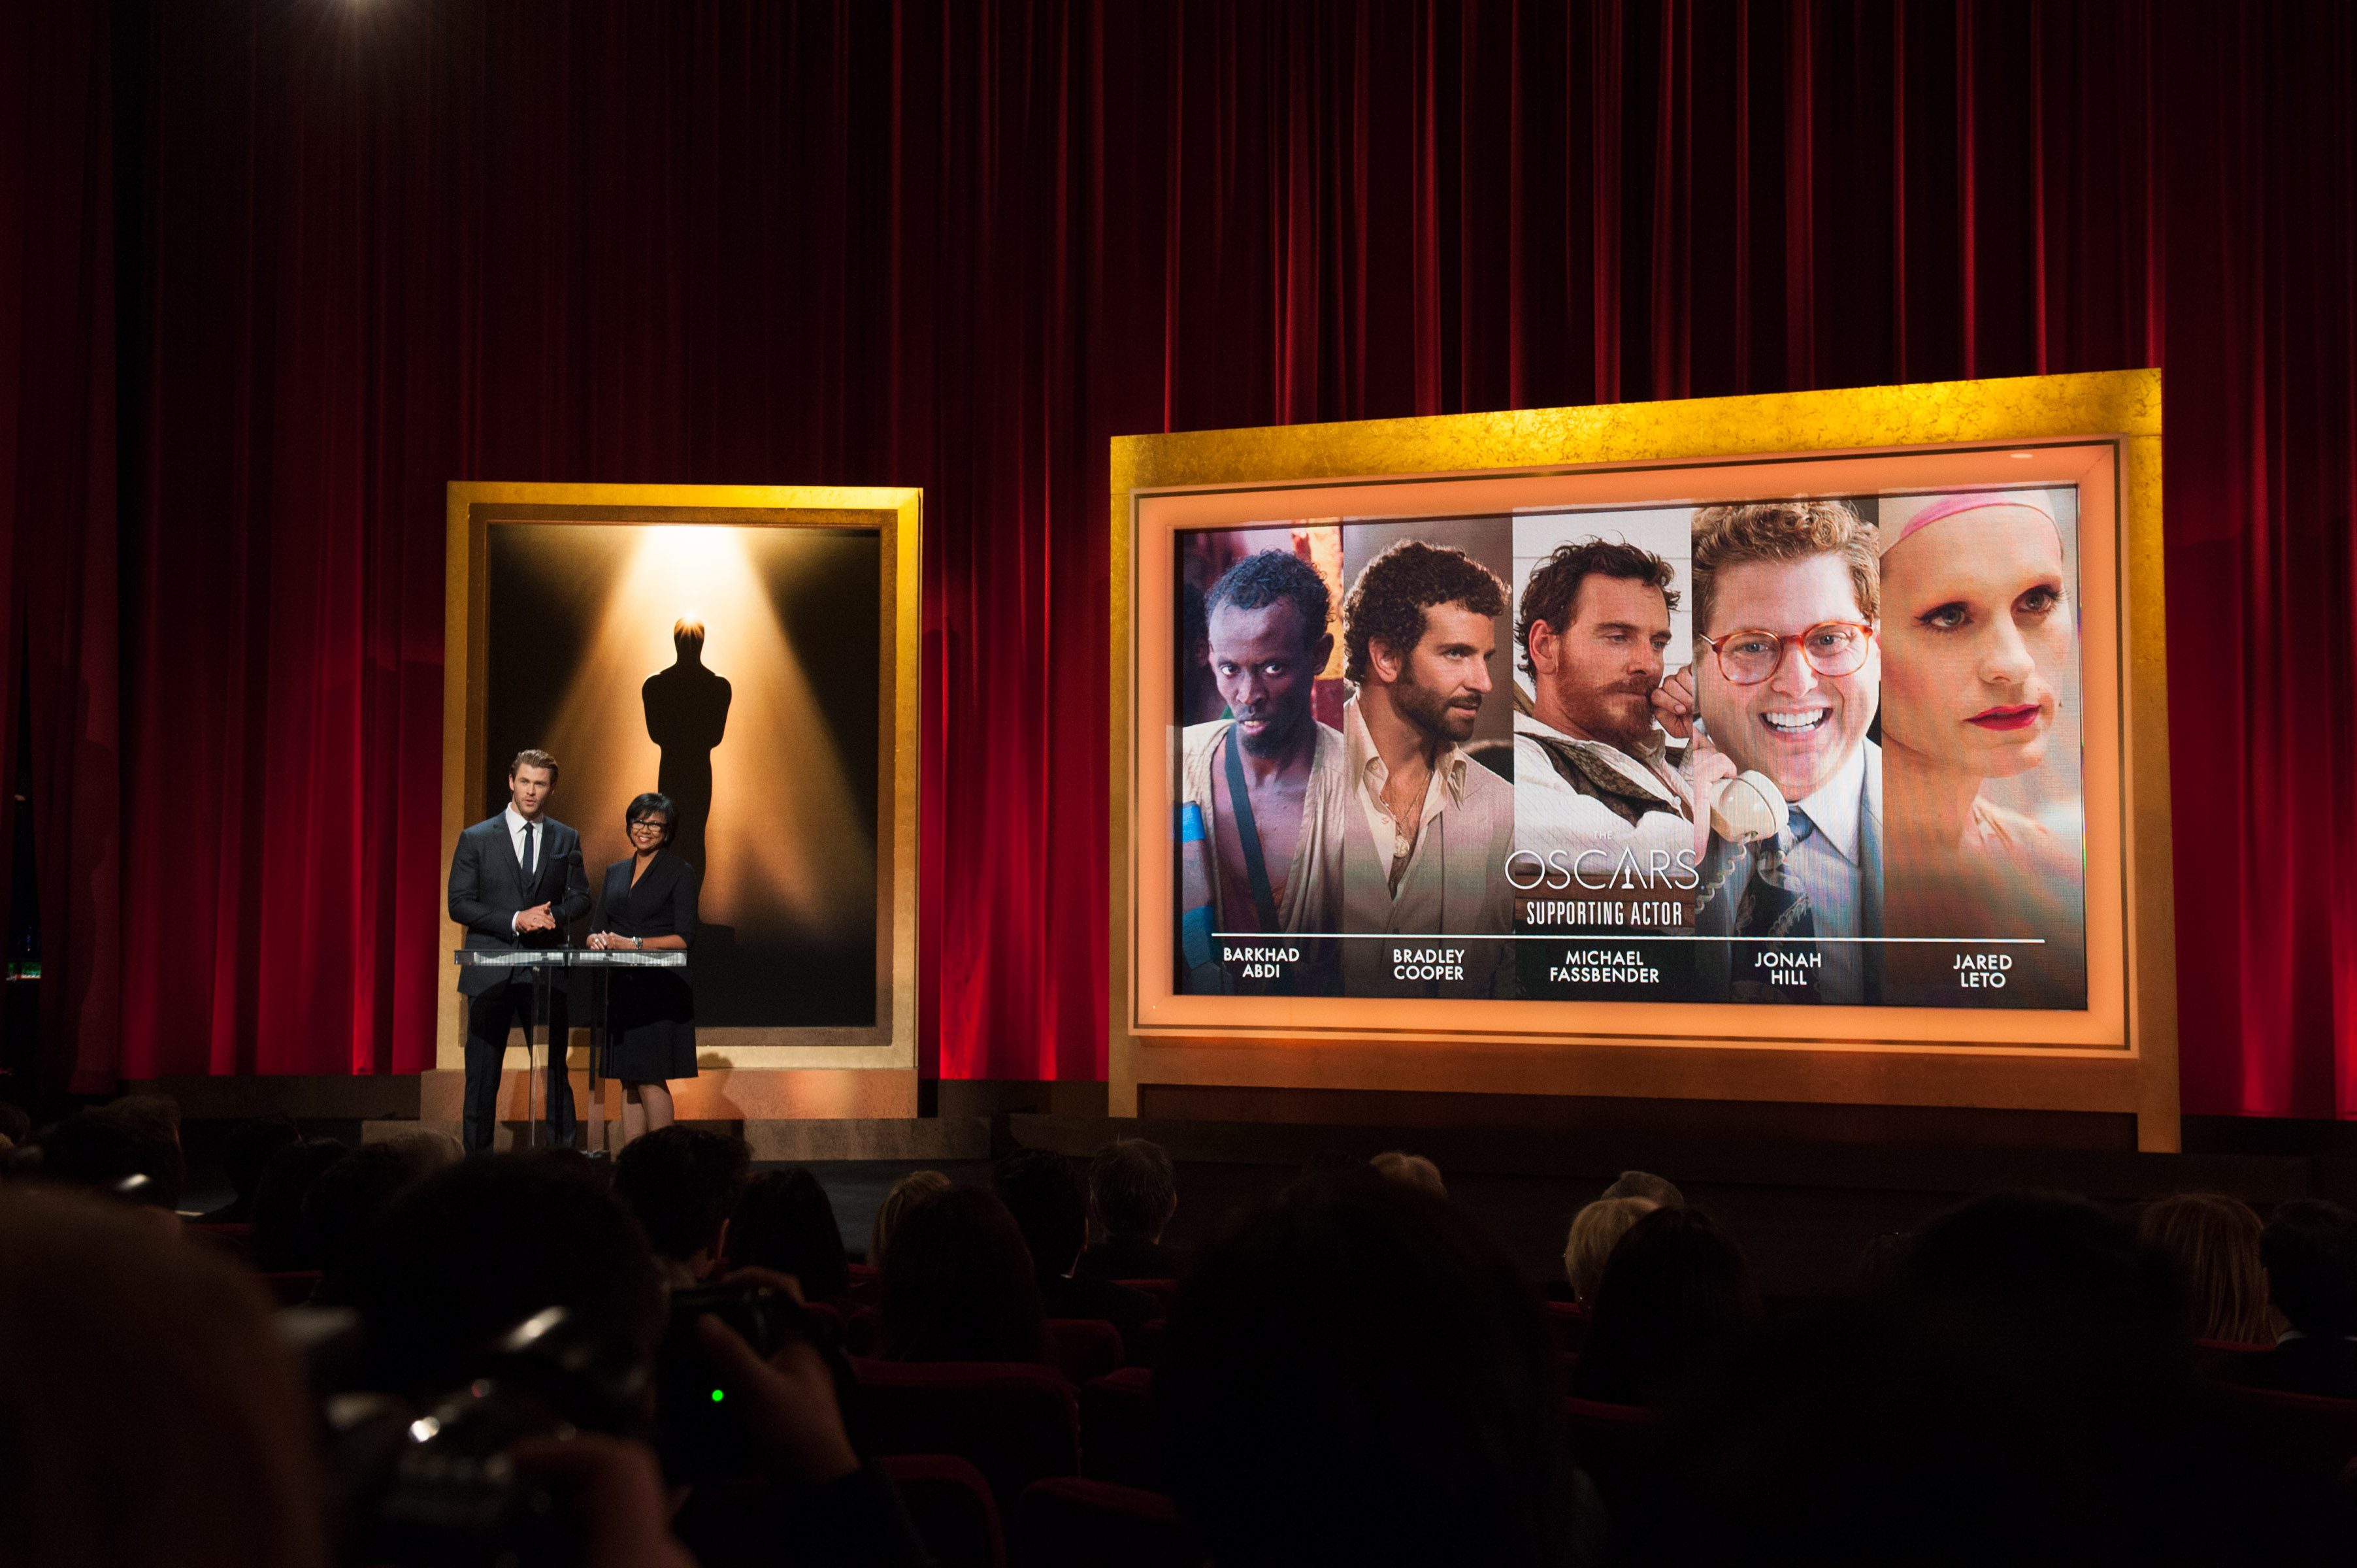 Academy Awards Nomination Announcement The Oscar Nominations Are Out! Who Made the Cut and Who Got Snubbed?